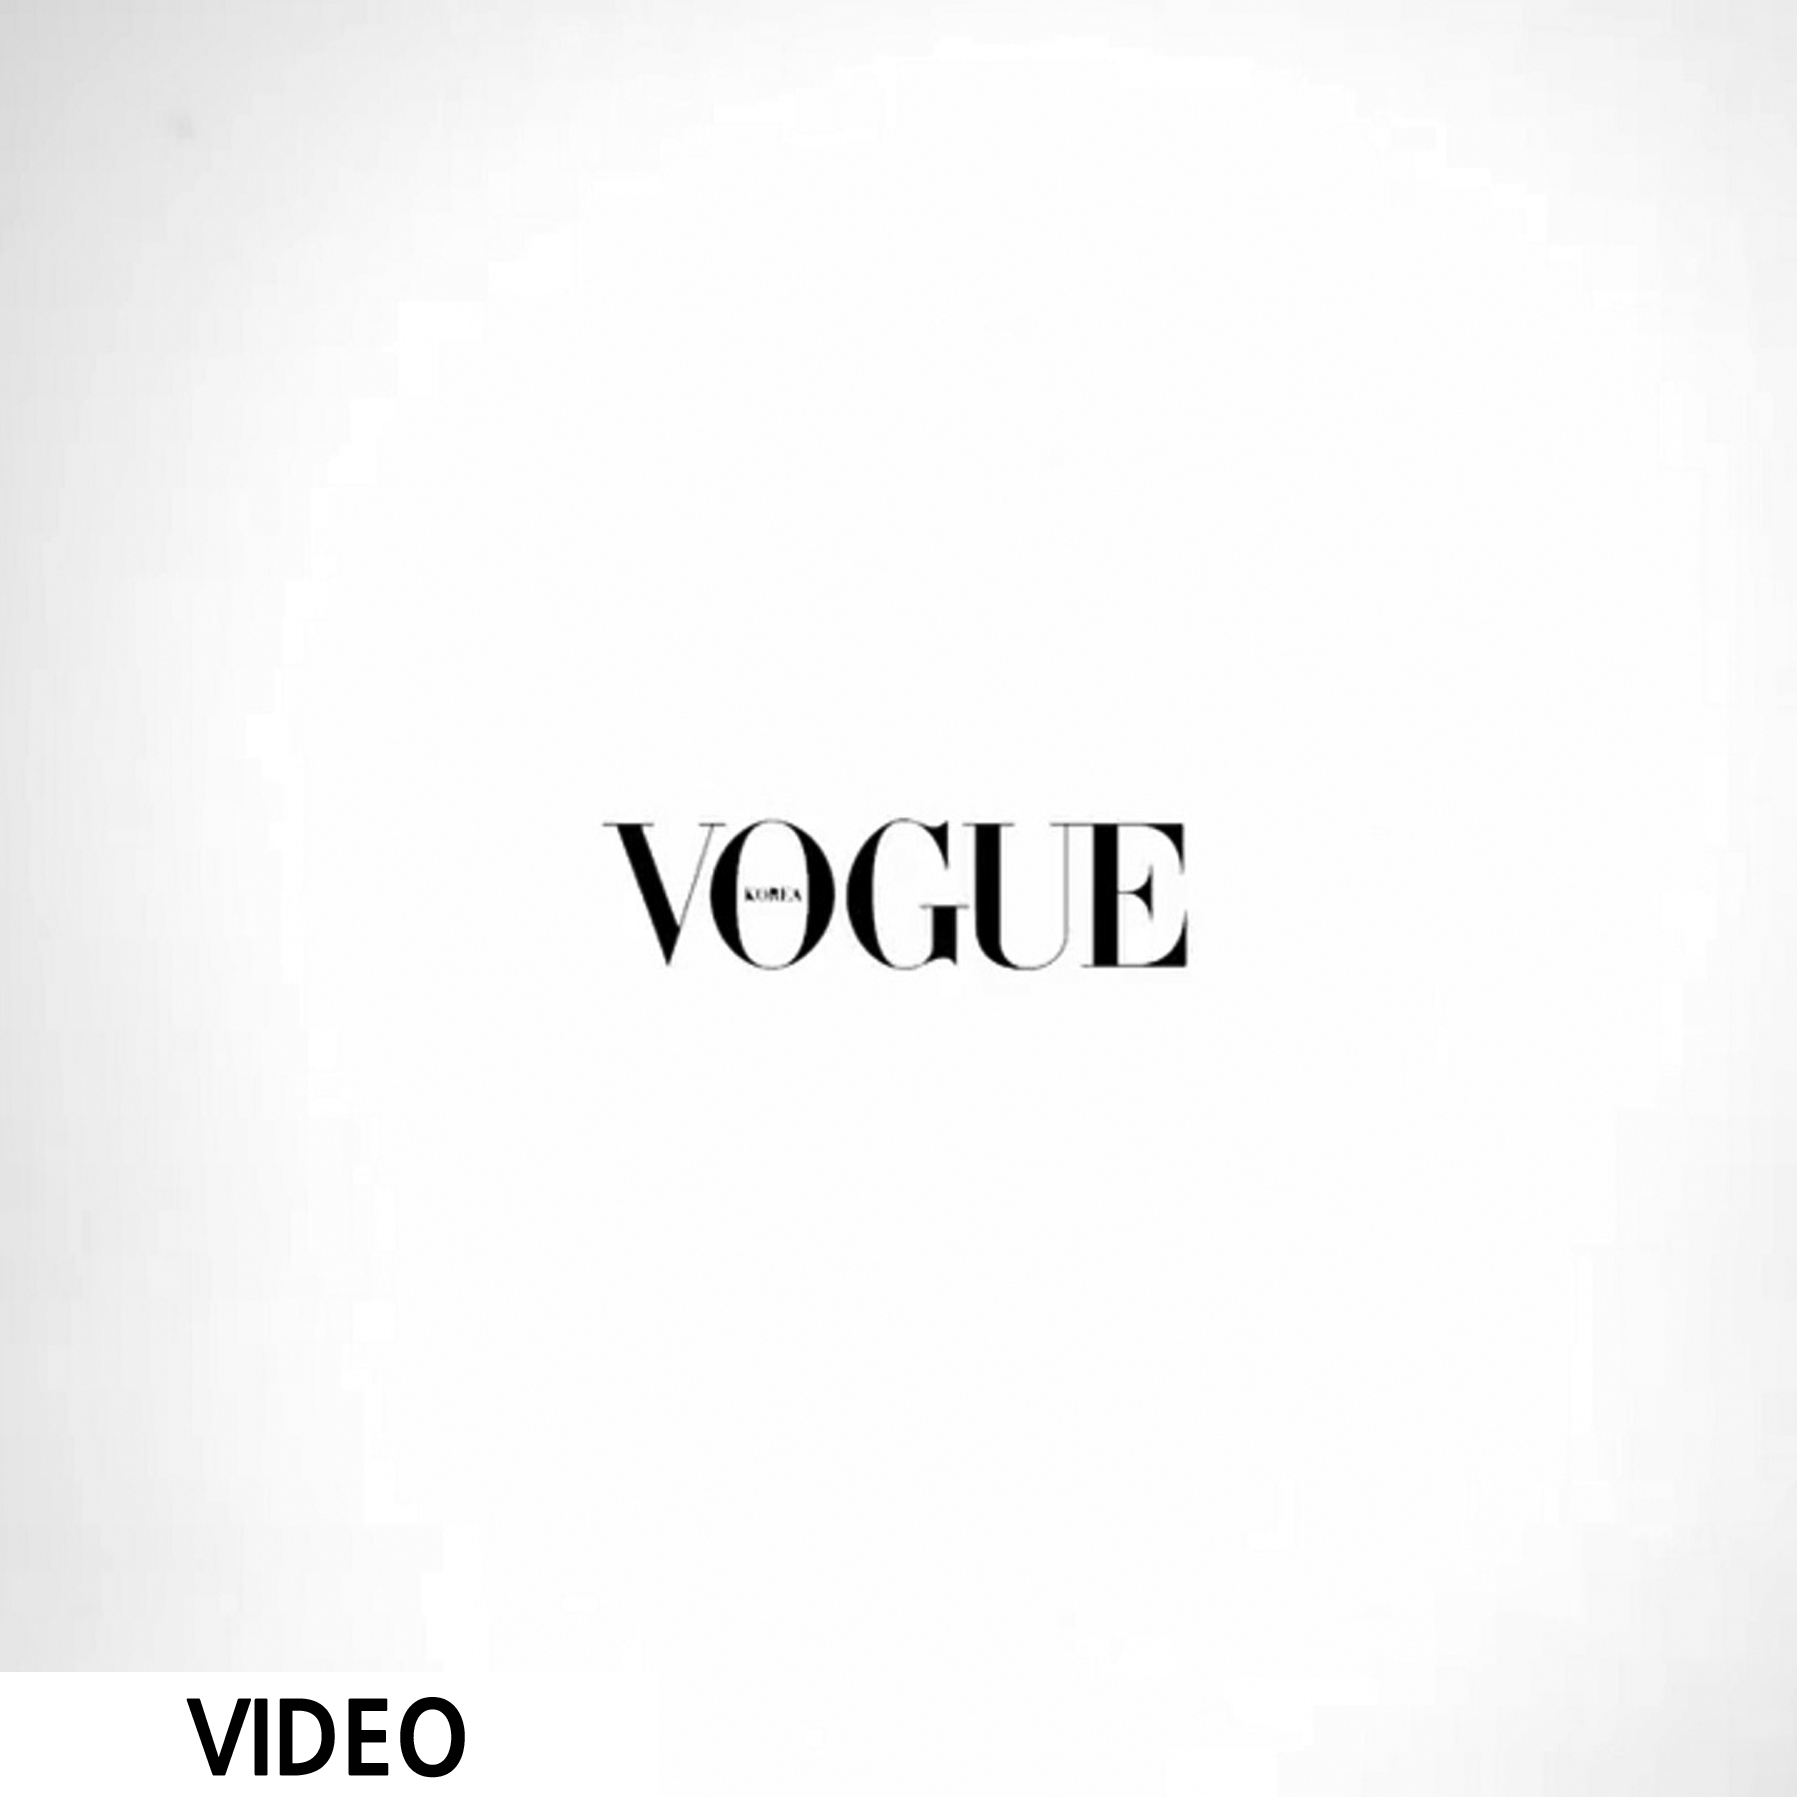 VOGUE 매거진 X 입생로랑 영상 with TOYKEAT